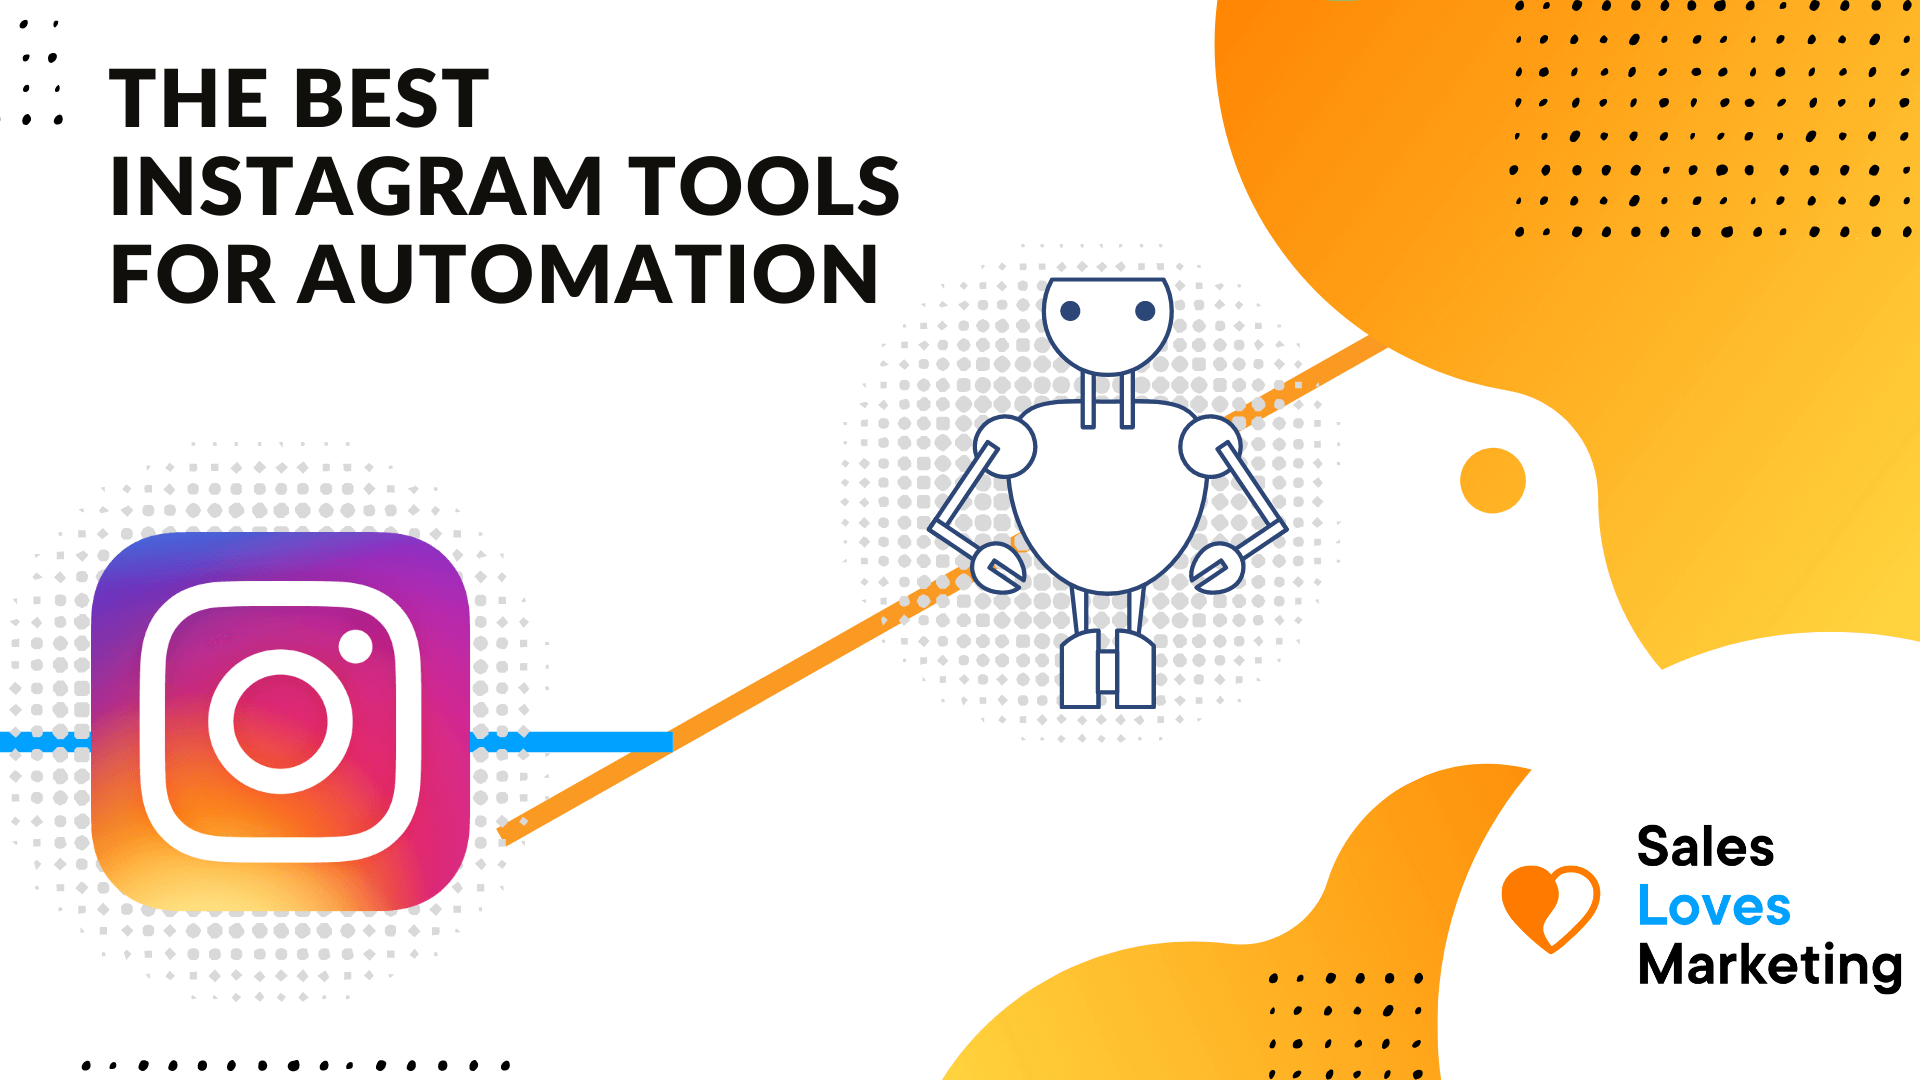 Overview of the best instagram tools for automation